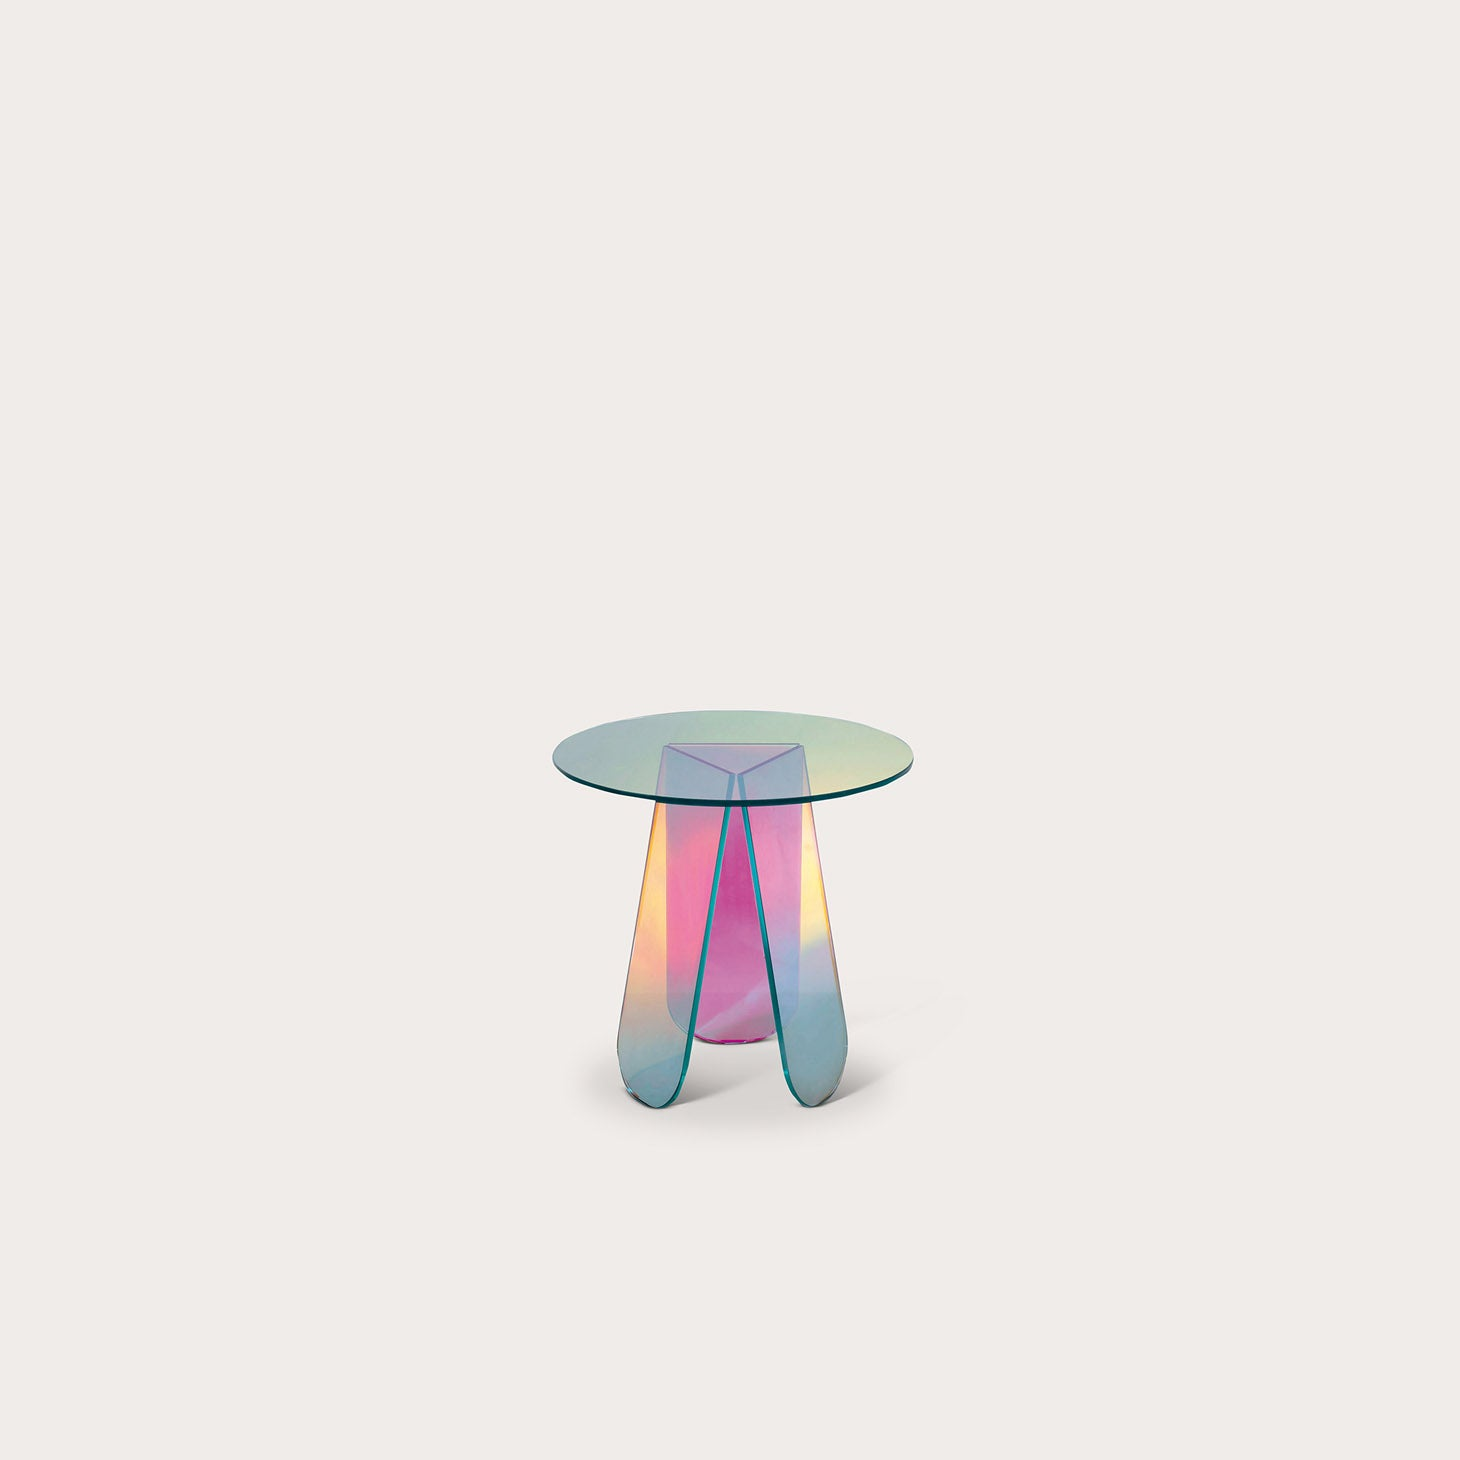 Shimmer Tables Patricia Urquiola Designer Furniture Sku: 288-230-10152